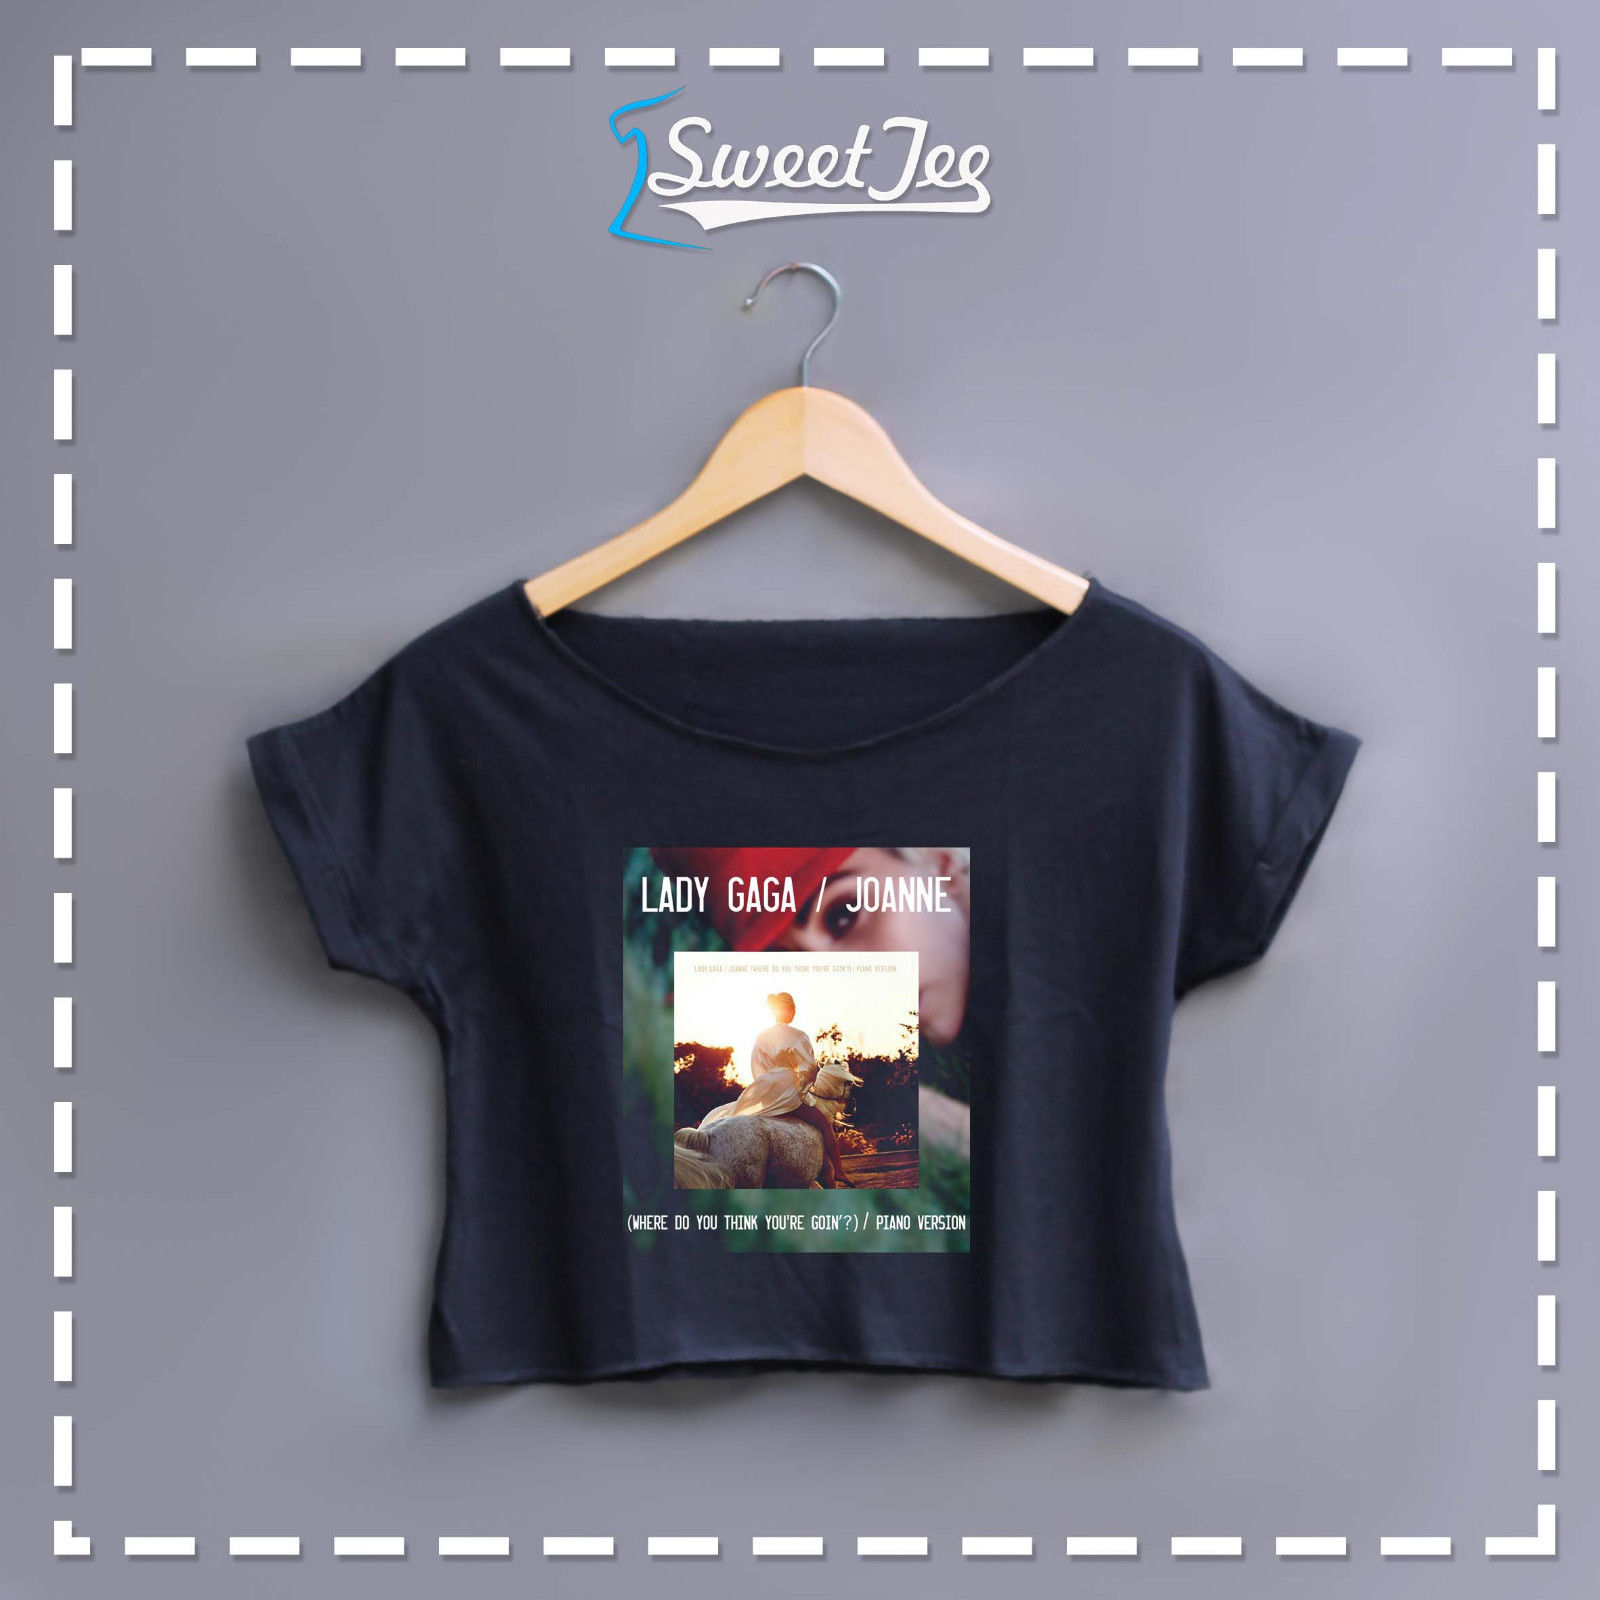 Lady Gaga Joanne (Where Do You Think Youre Goin?) t-shirt womens crop top tee